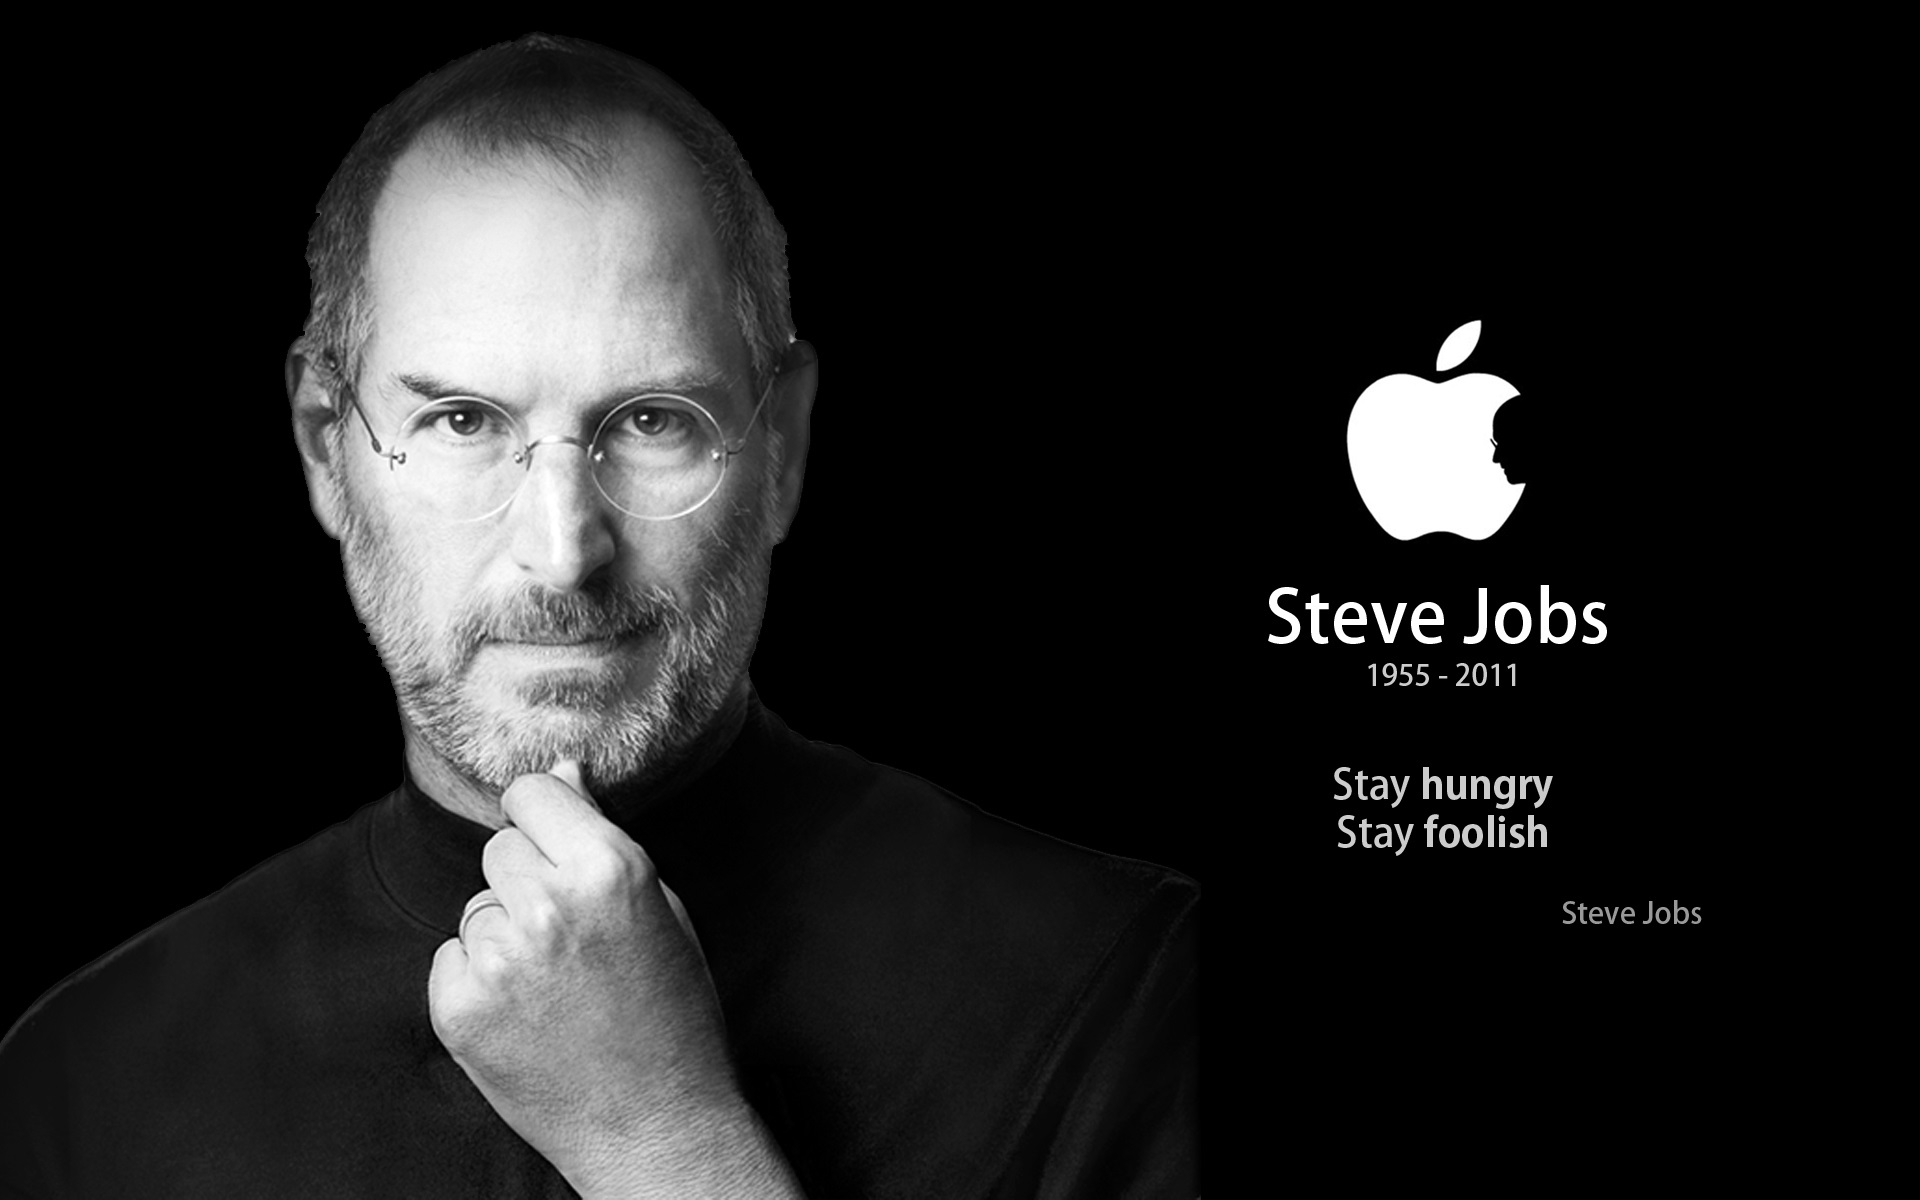 APPLE FOUNDER 'STEVE JOBS' GIVES AN INSPIRING SPEECH ABOUT HIS JOURNEY & HIS MOST IMPORTANT LIFE LESSONS!